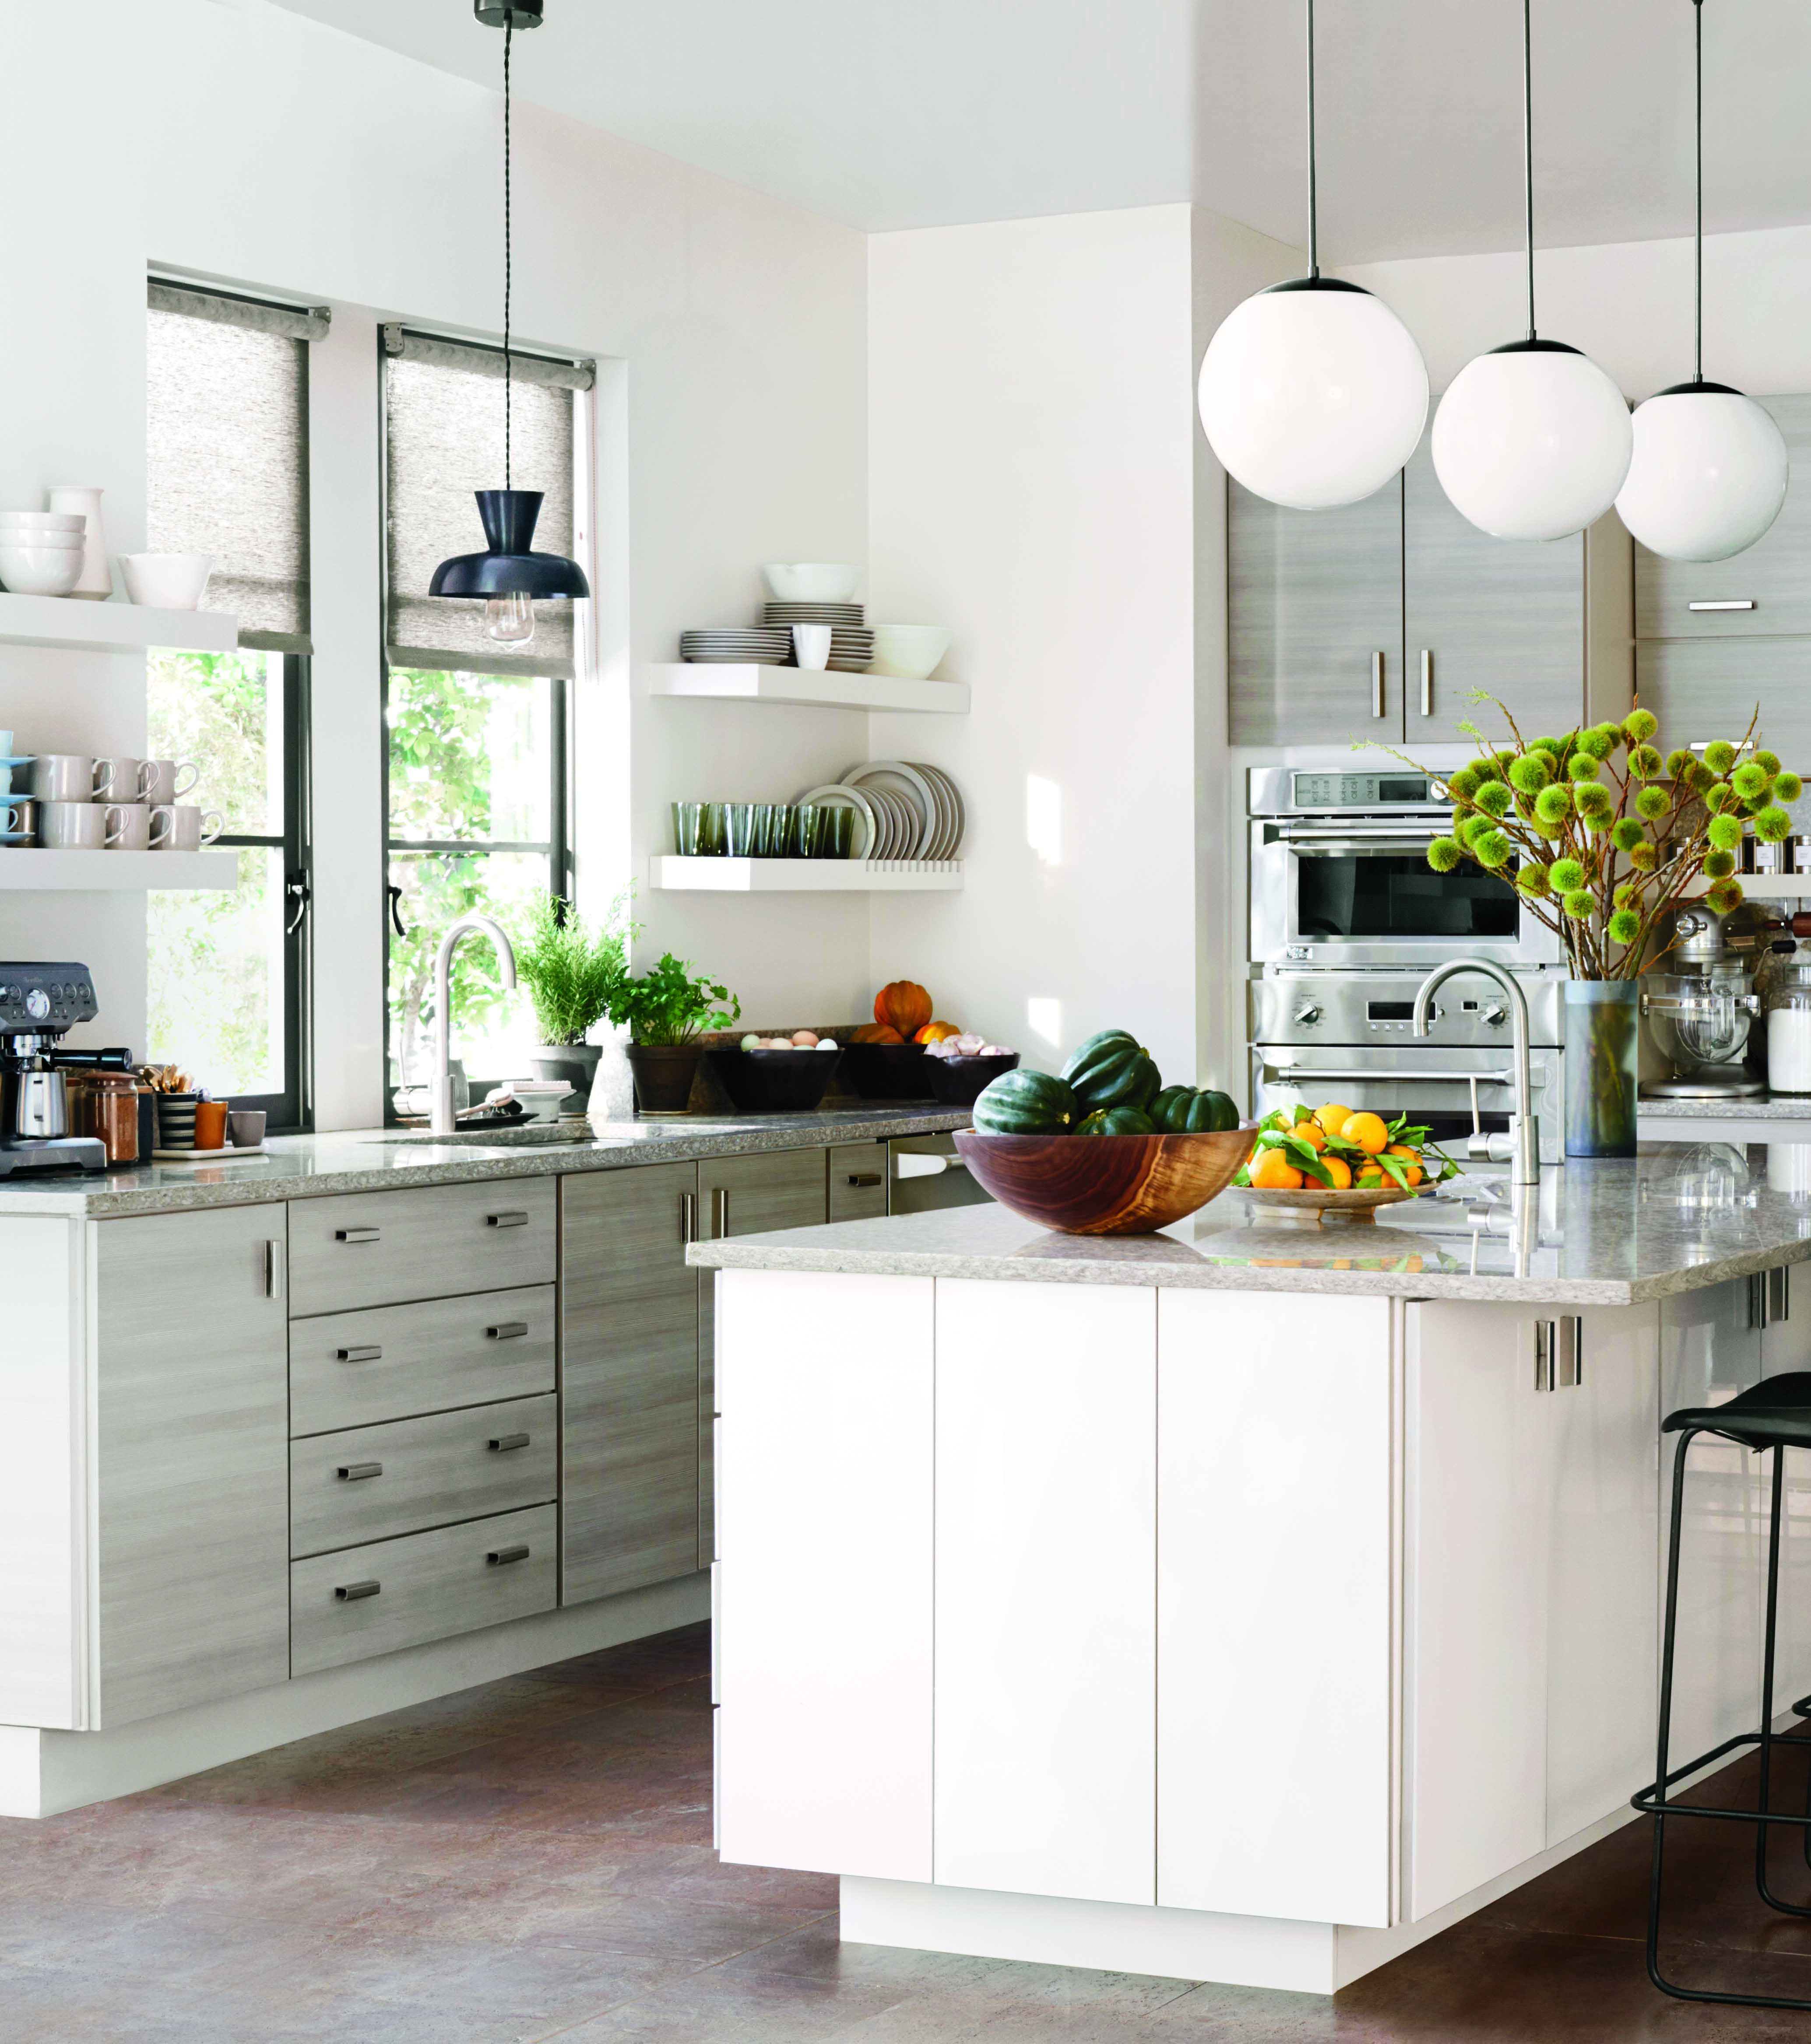 Cabinet Refacing Cost For New Fresh Home Kitchen: The Dream Kitchen You've Always Wanted, At The Price You